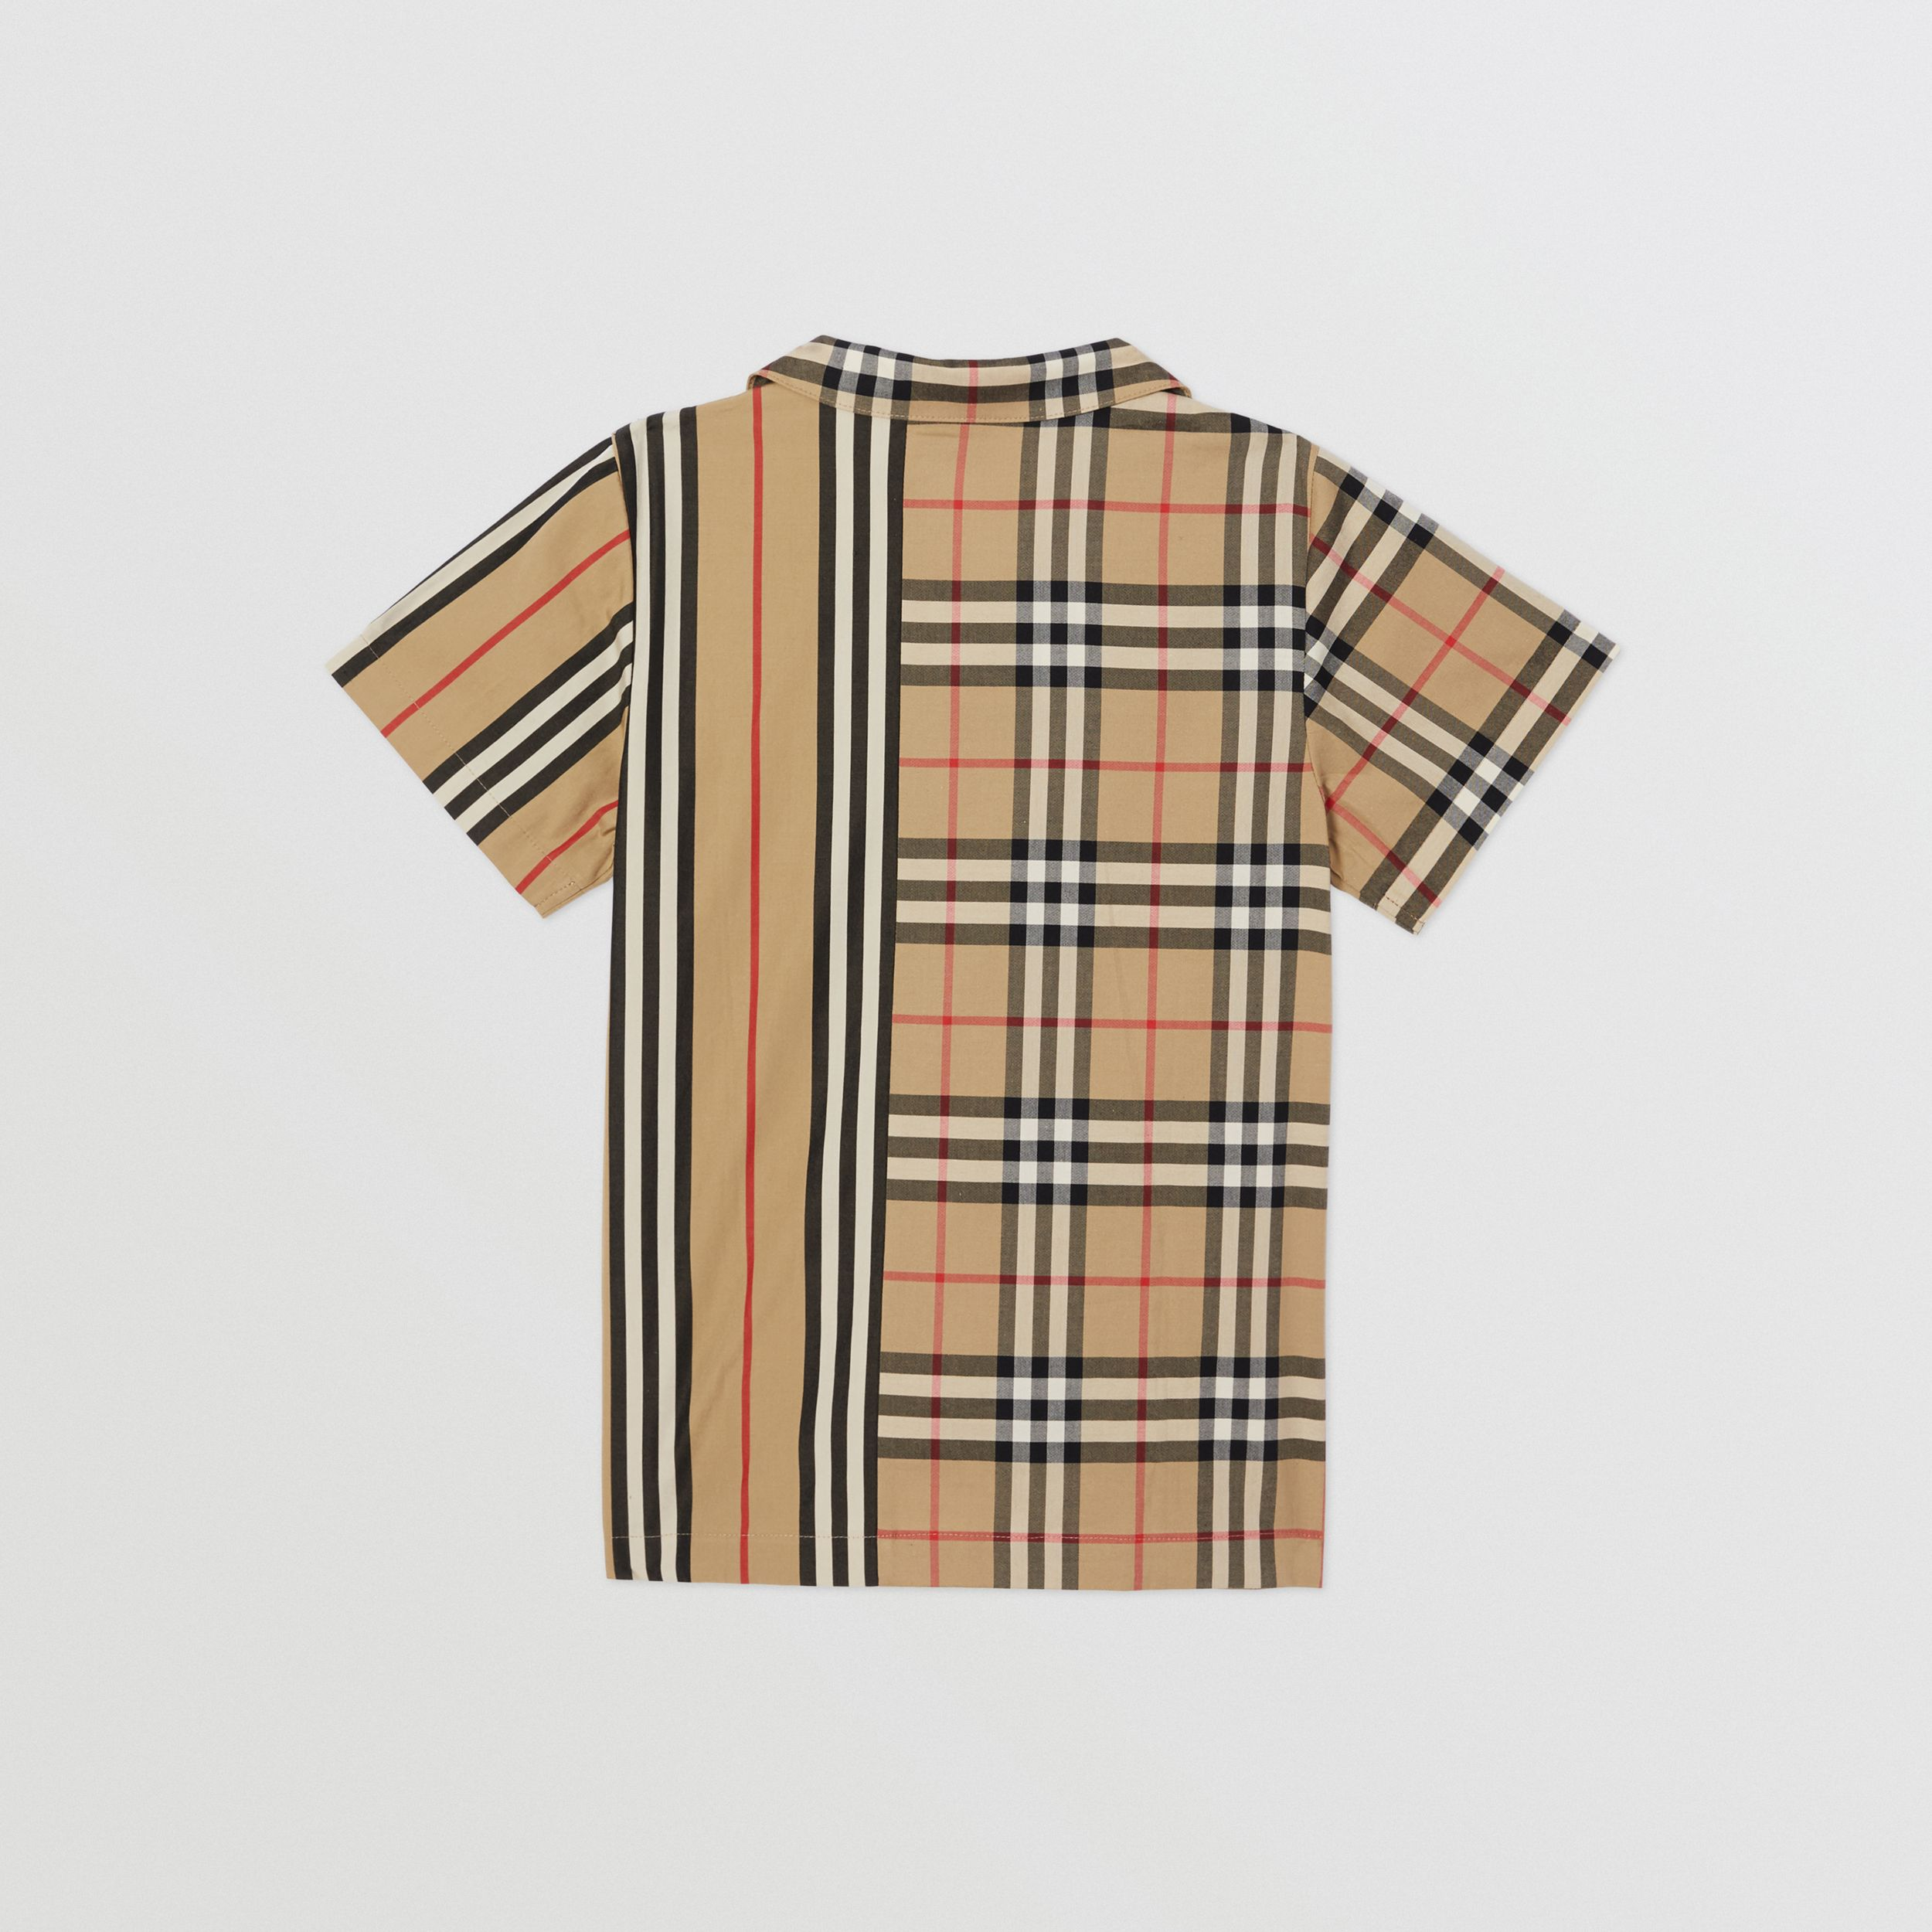 Short-sleeve Vintage Check and Icon Stripe Shirt in Archive Beige | Burberry - 4